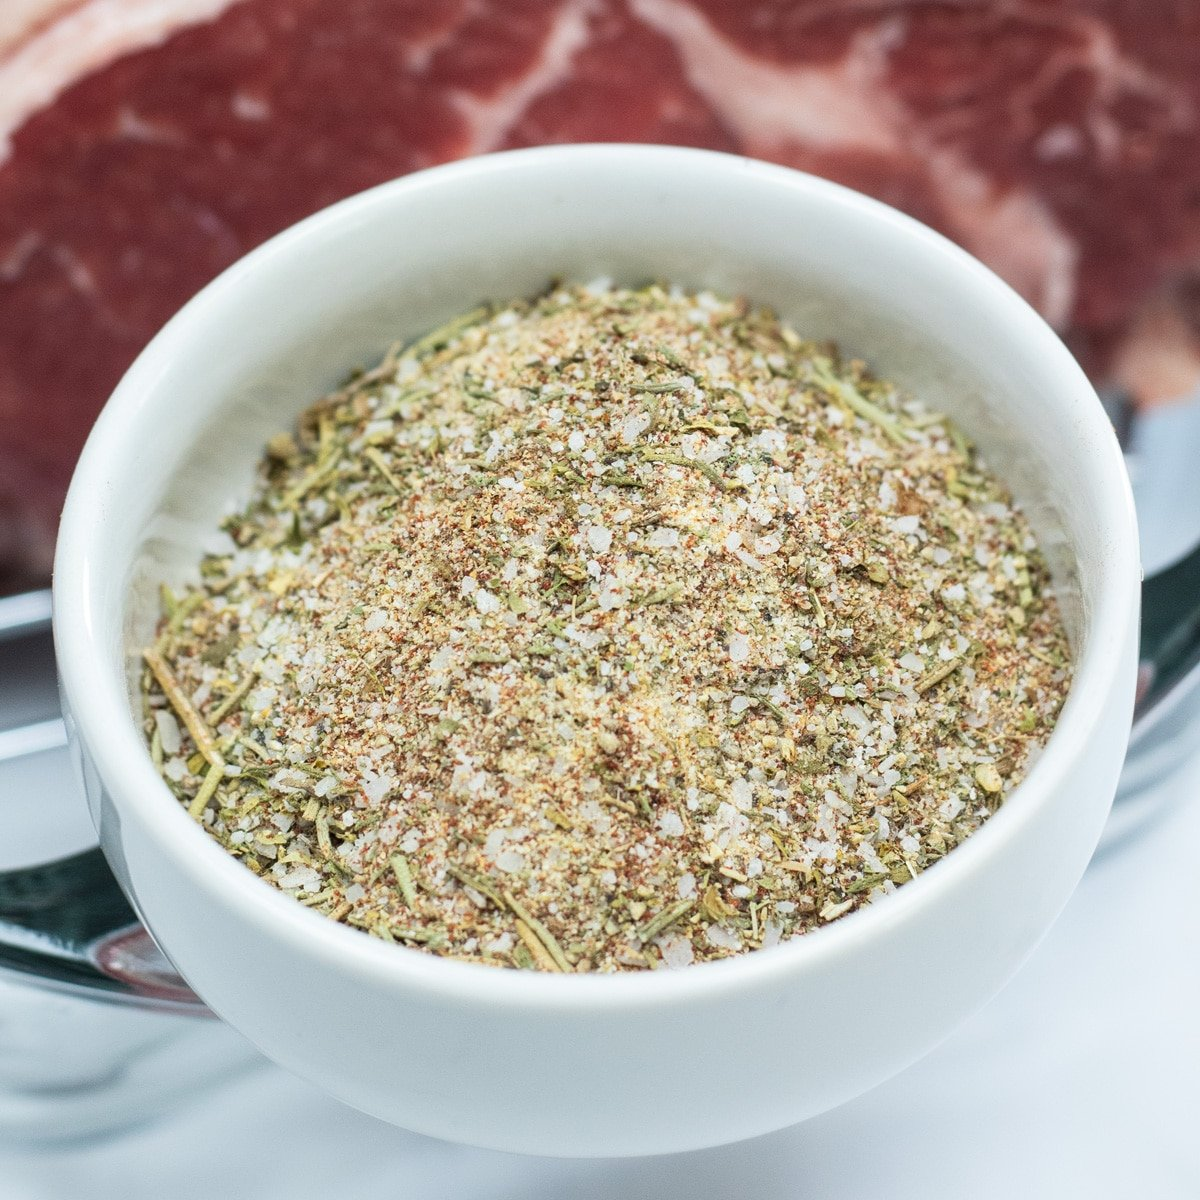 Prime rib rub combined in white bowl with prime rib in background.